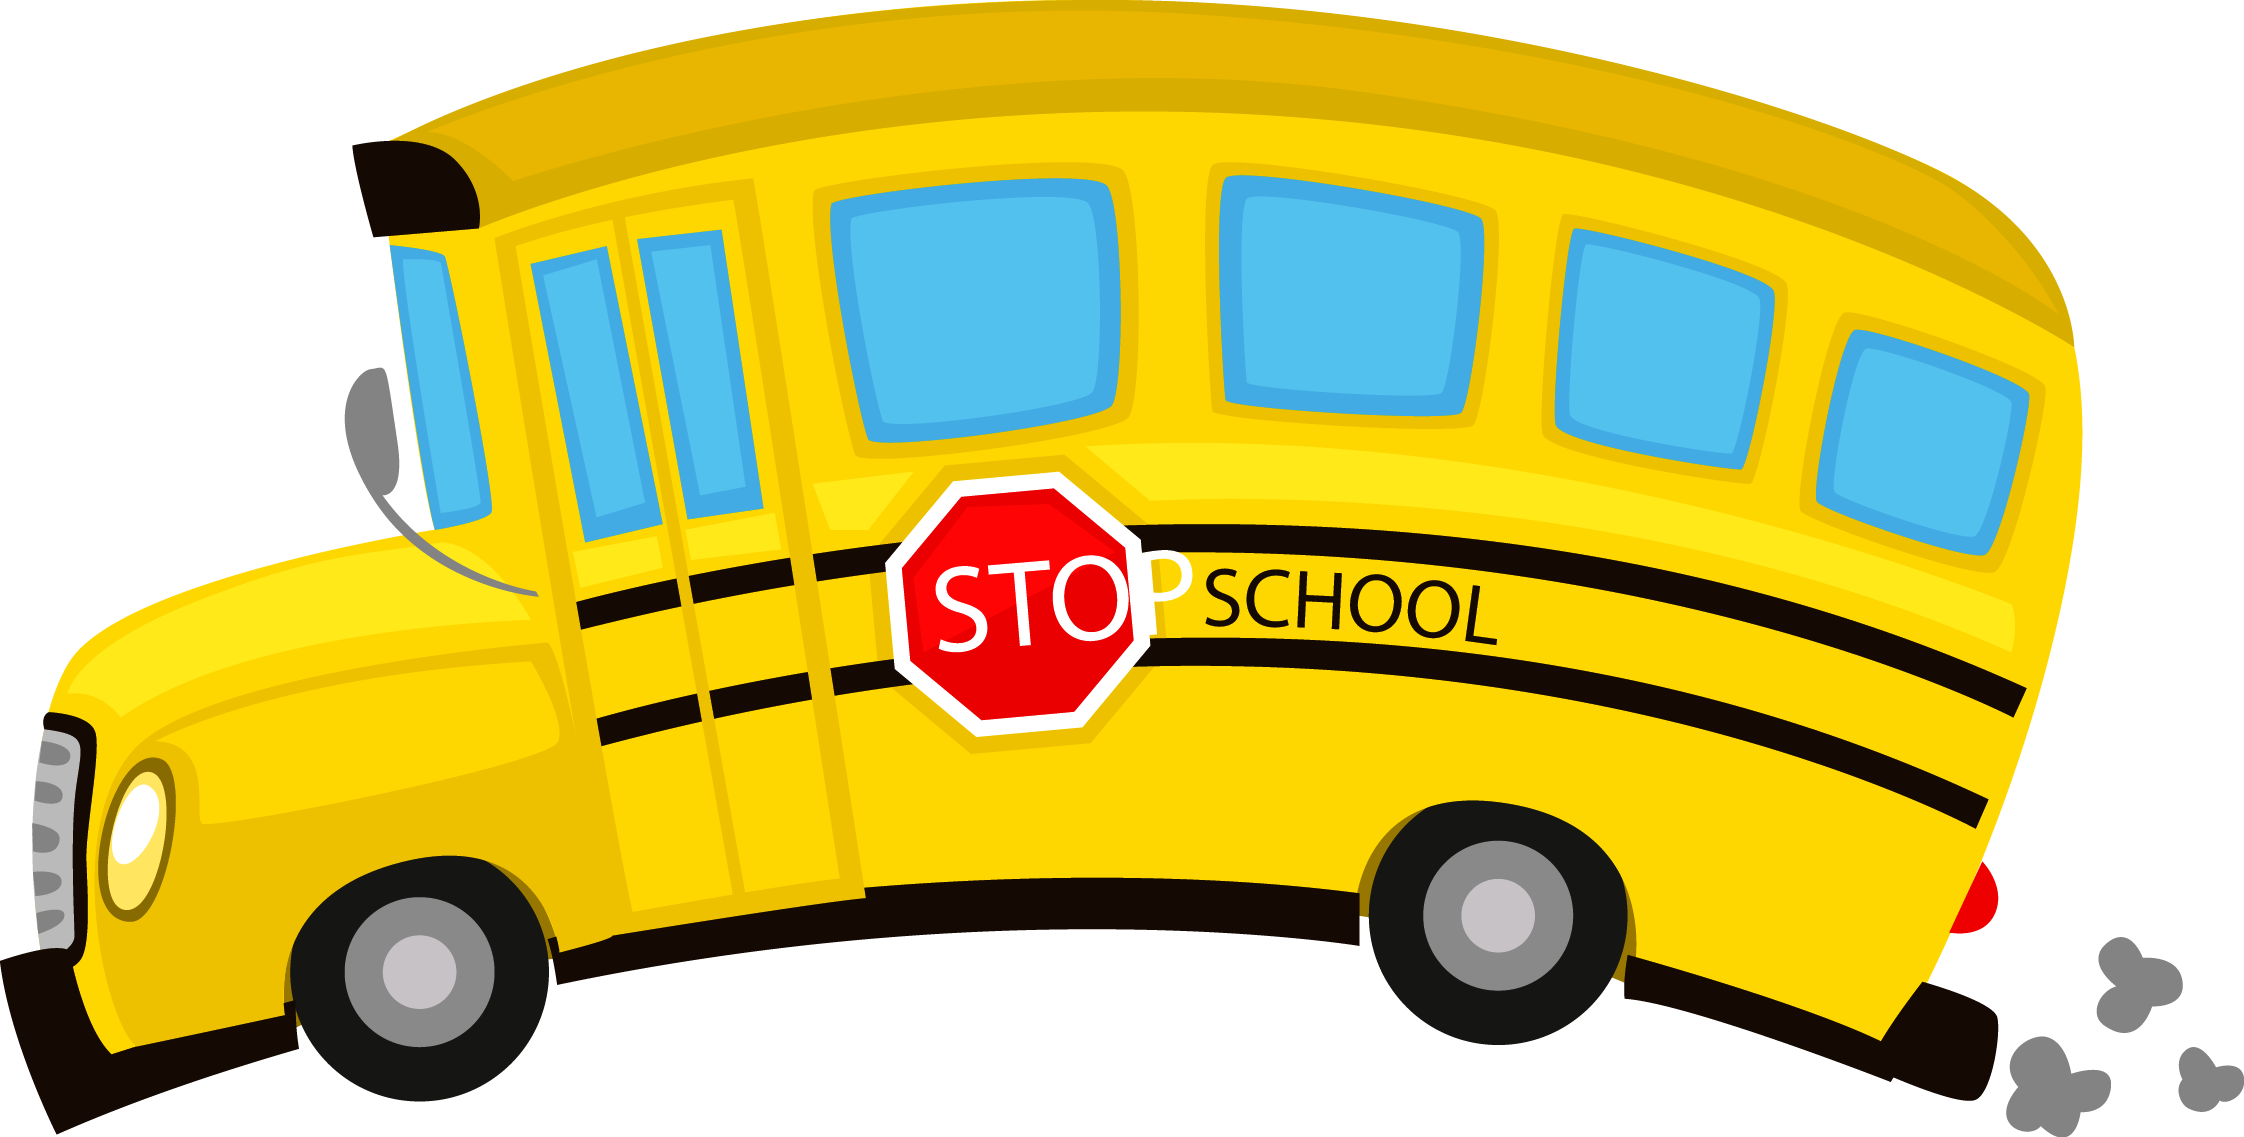 School bus safety clipart banner download School Bus Drawing Pictures at GetDrawings.com | Free for personal ... banner download